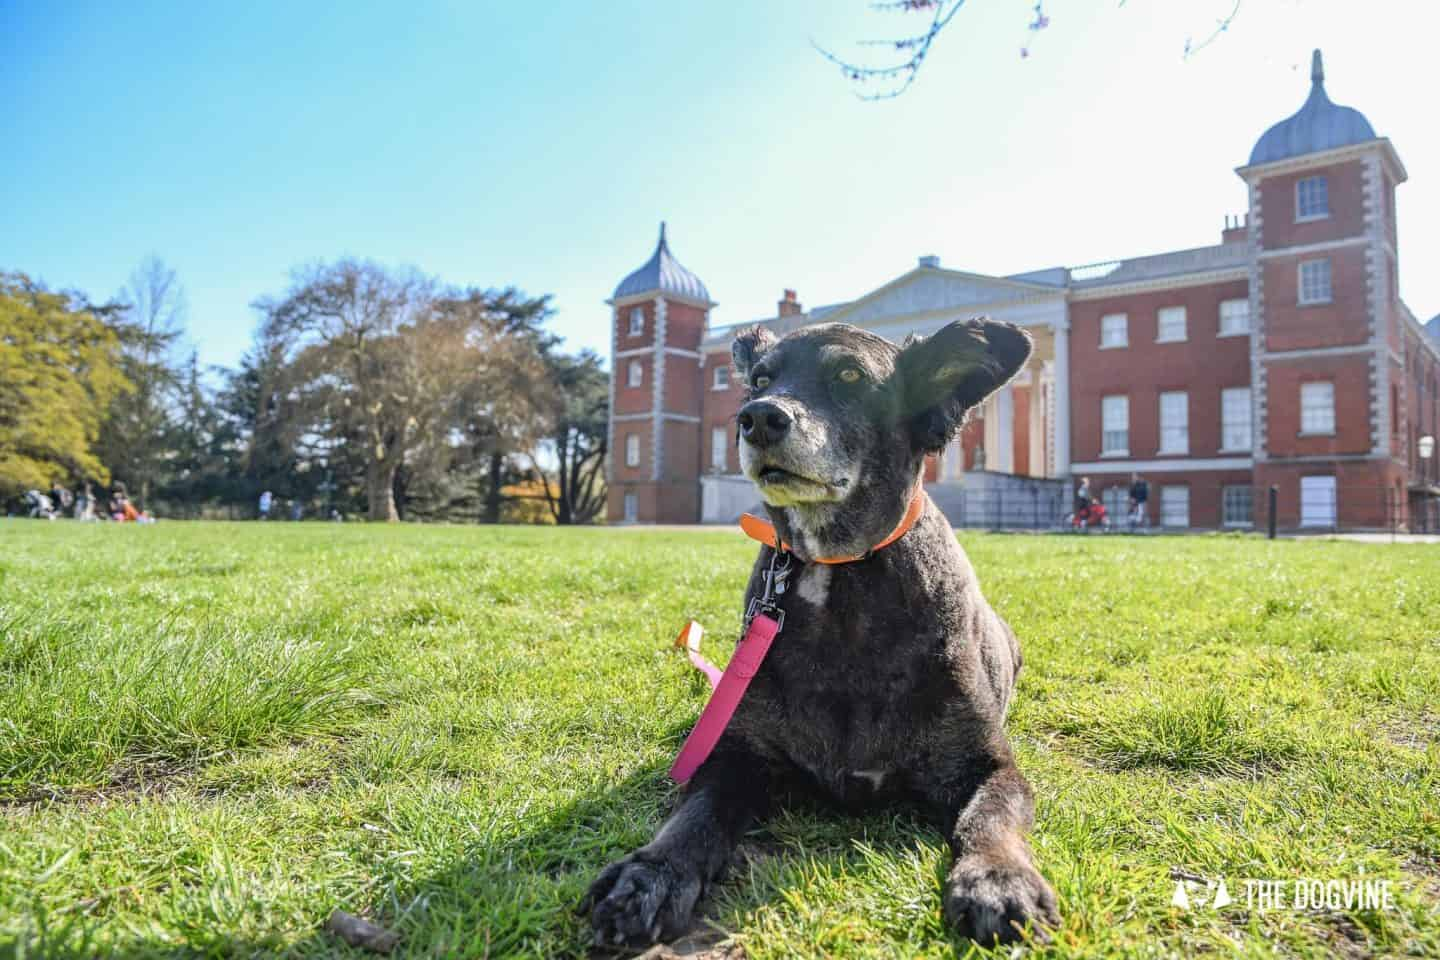 Dog-Friendly Osterley Park and House - Visiting With Your Dog 19